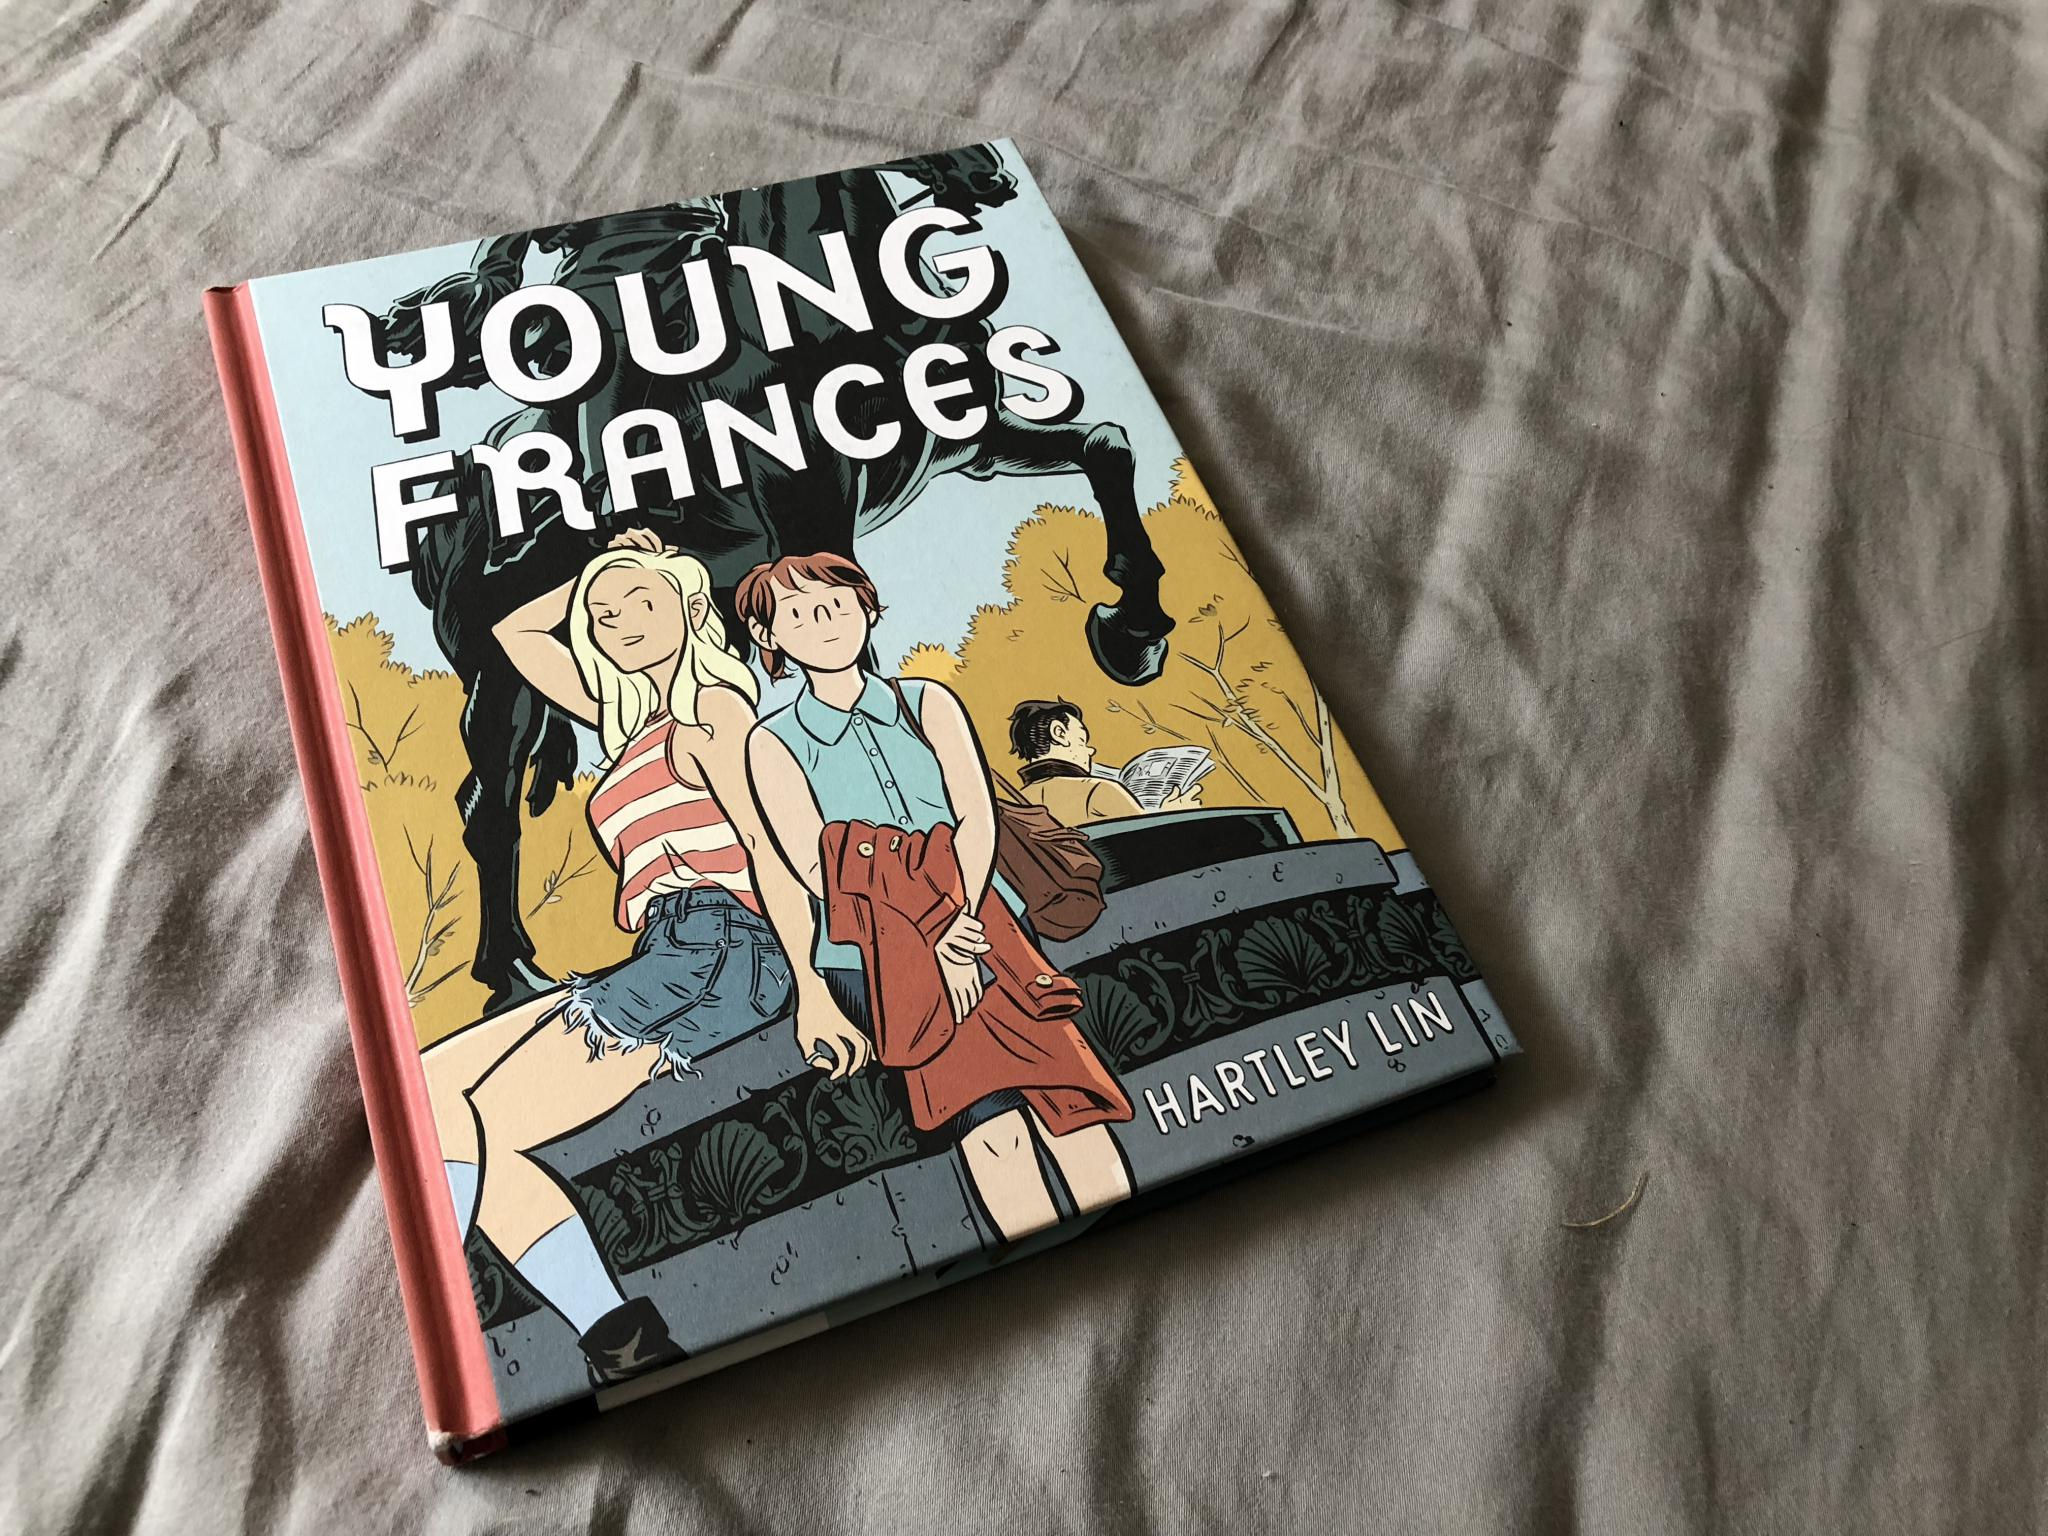 Young Frances